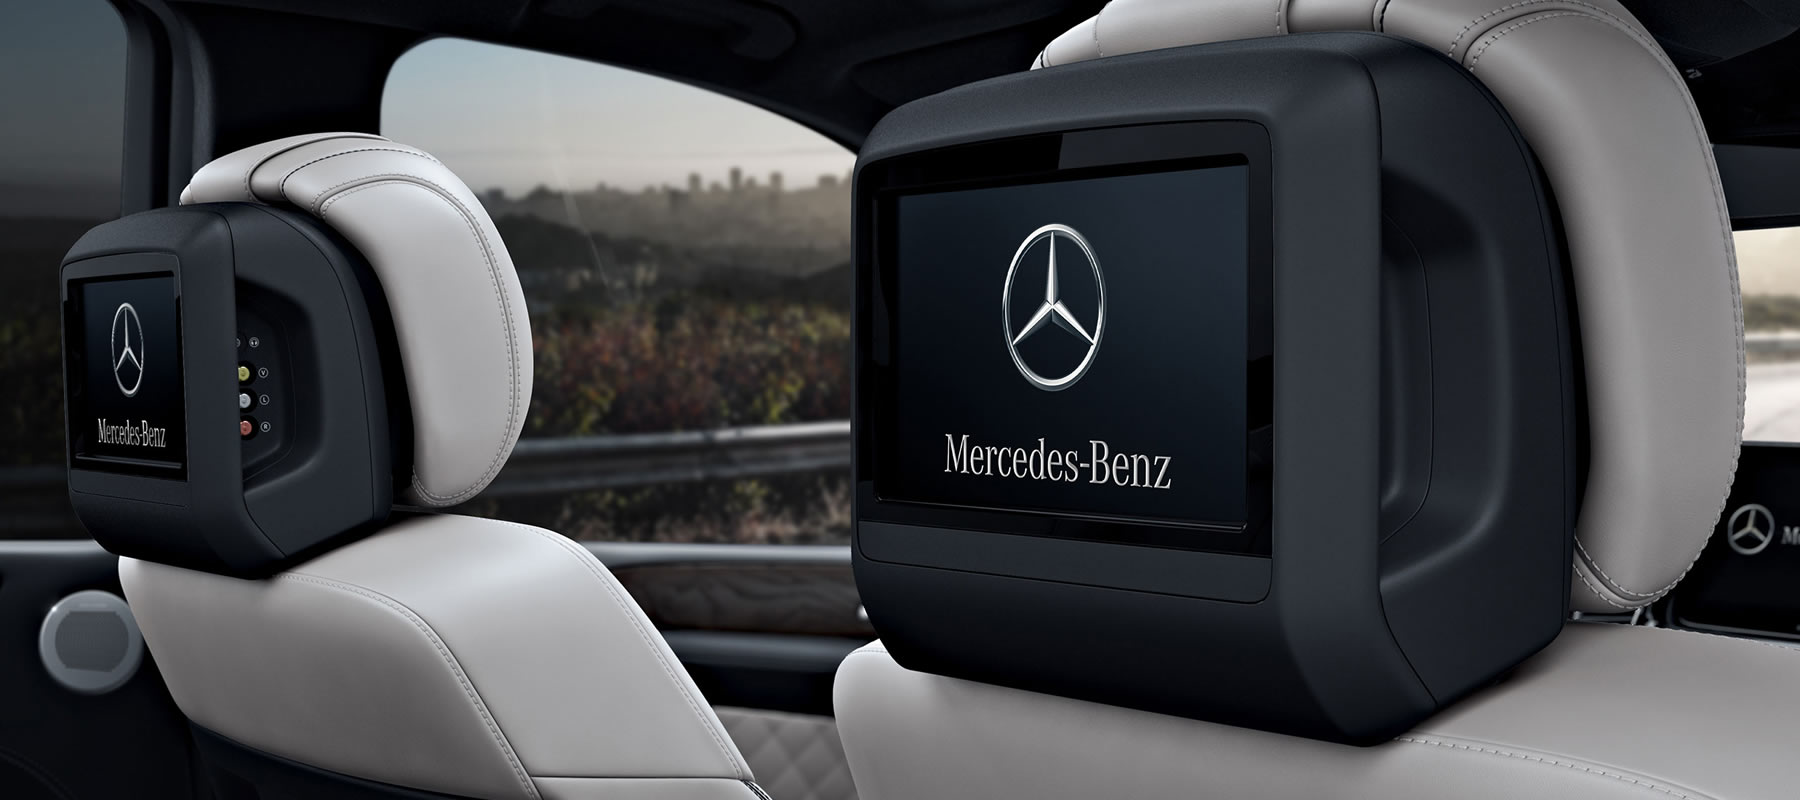 Genuine mercedes benz parts accessories at mercedes benz for Auto parts for mercedes benz